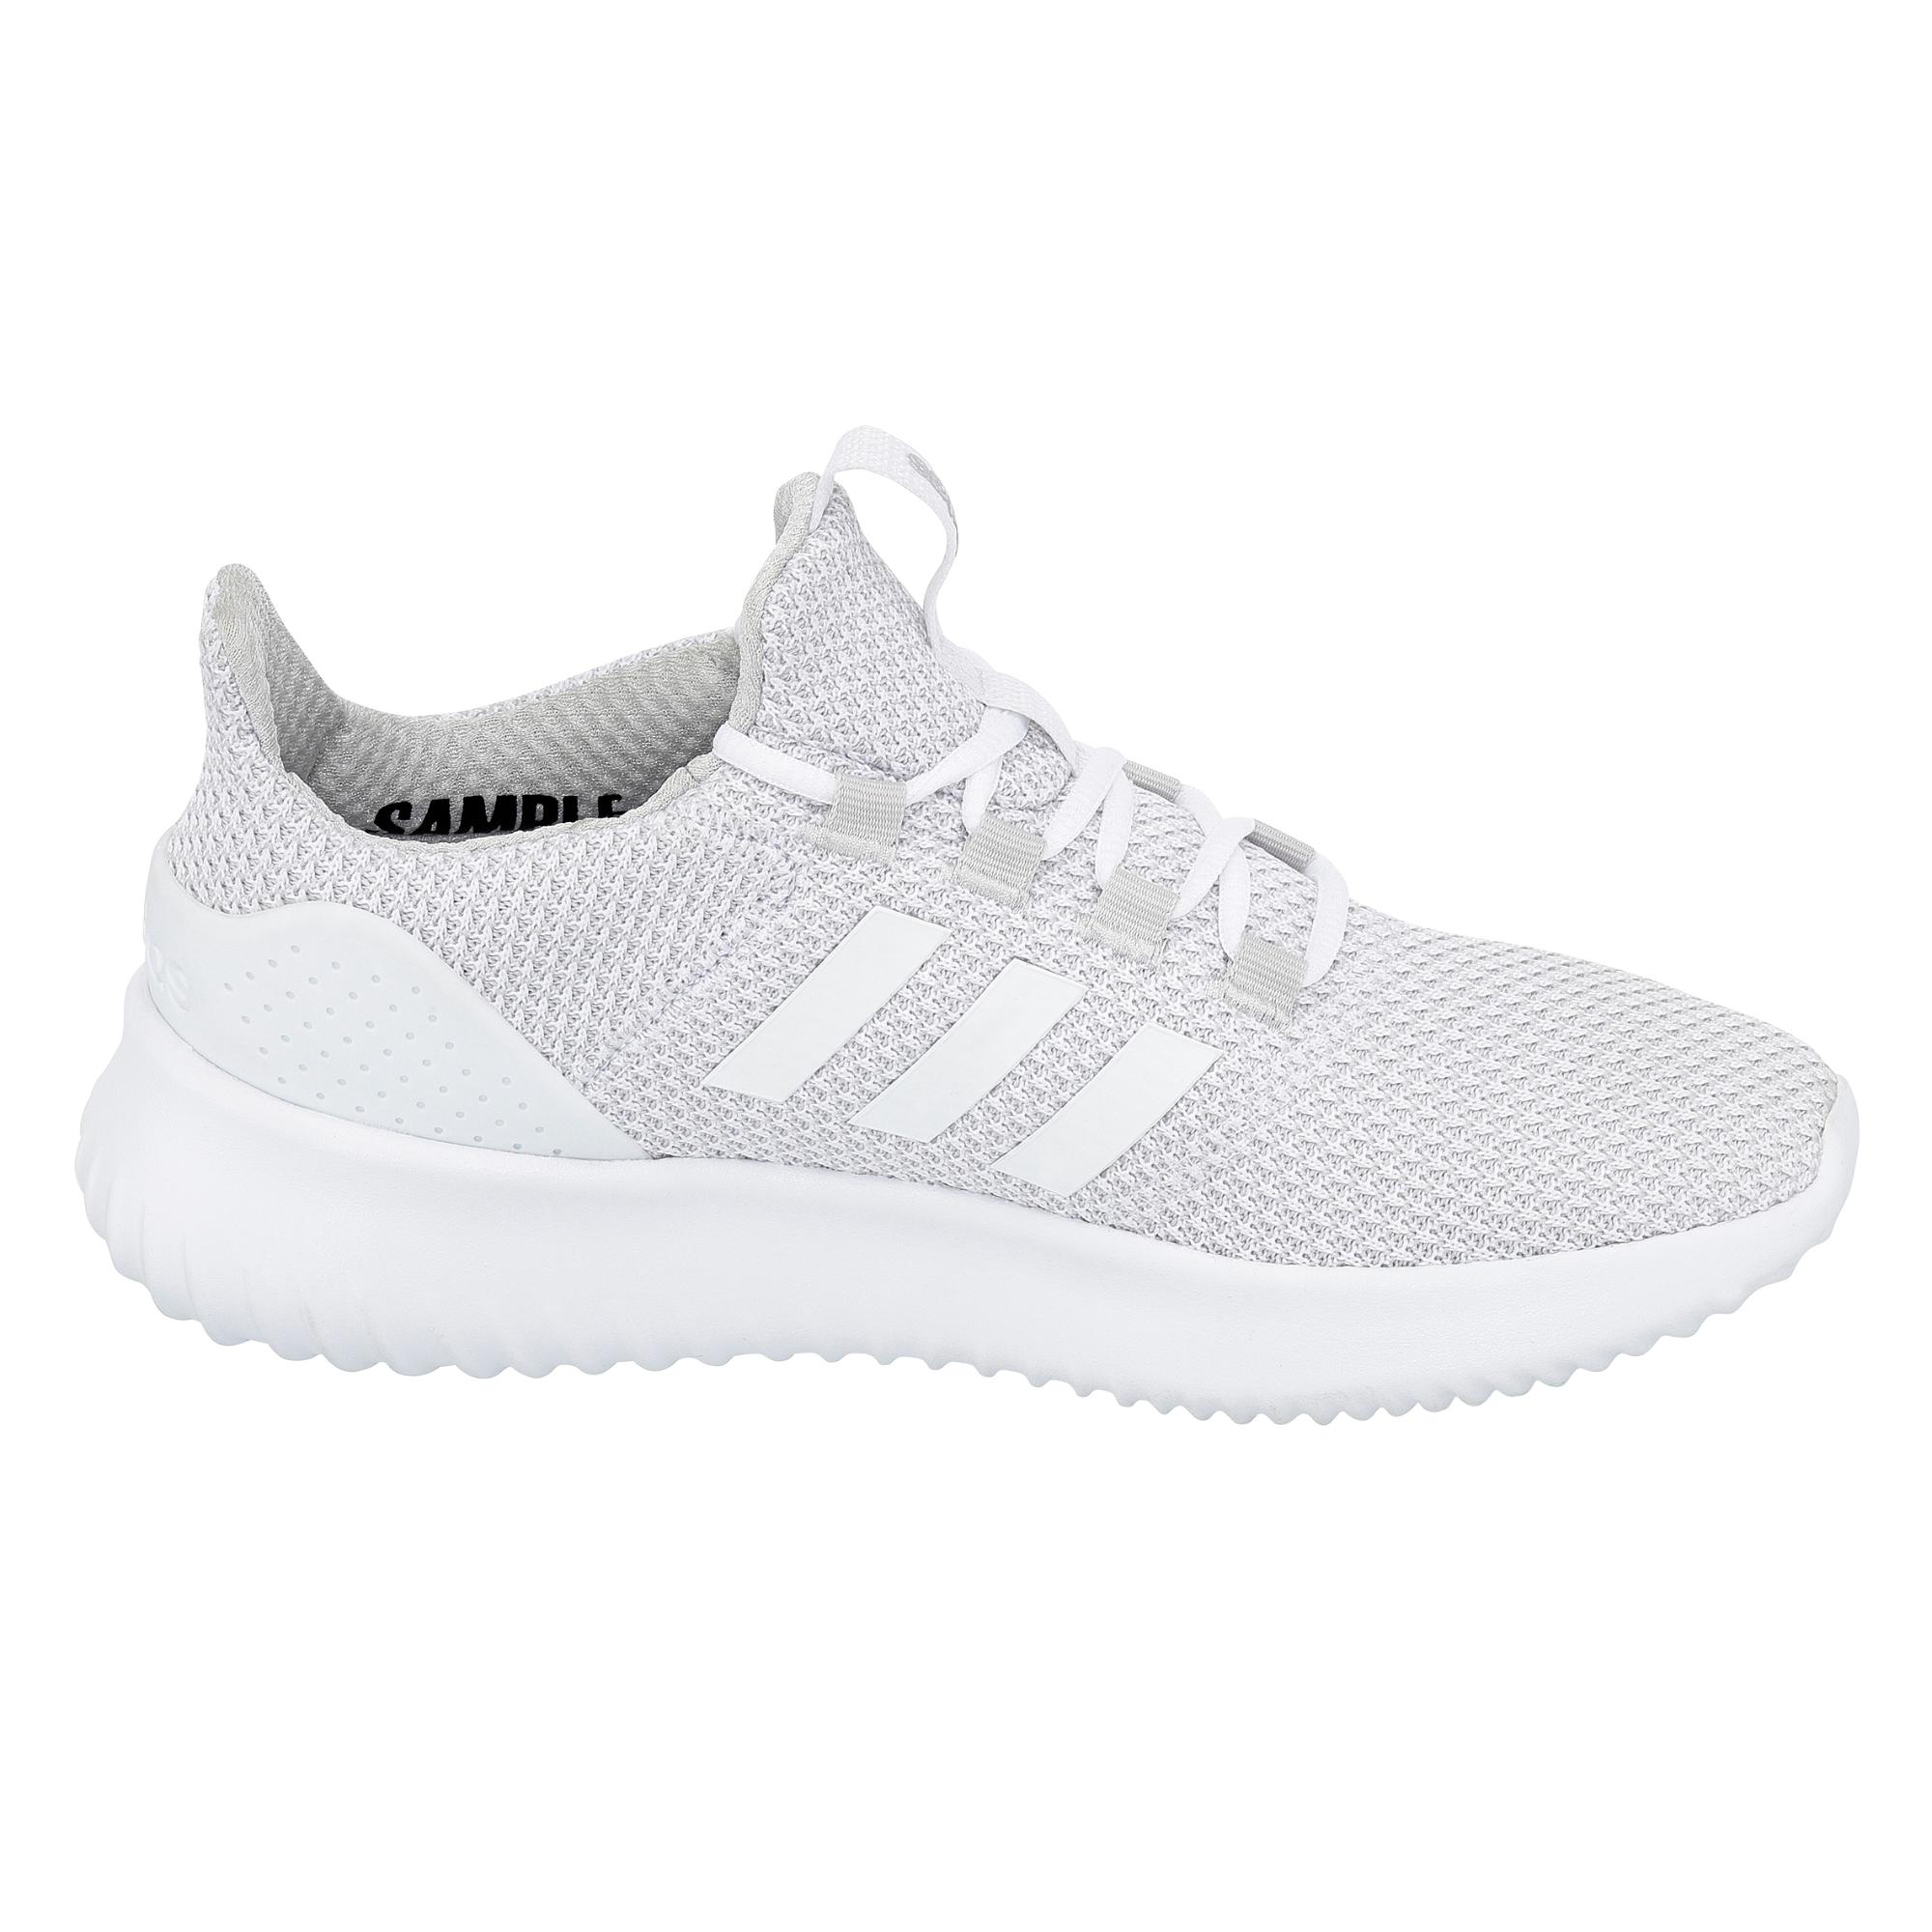 adidas cloudfoam ultimate damen